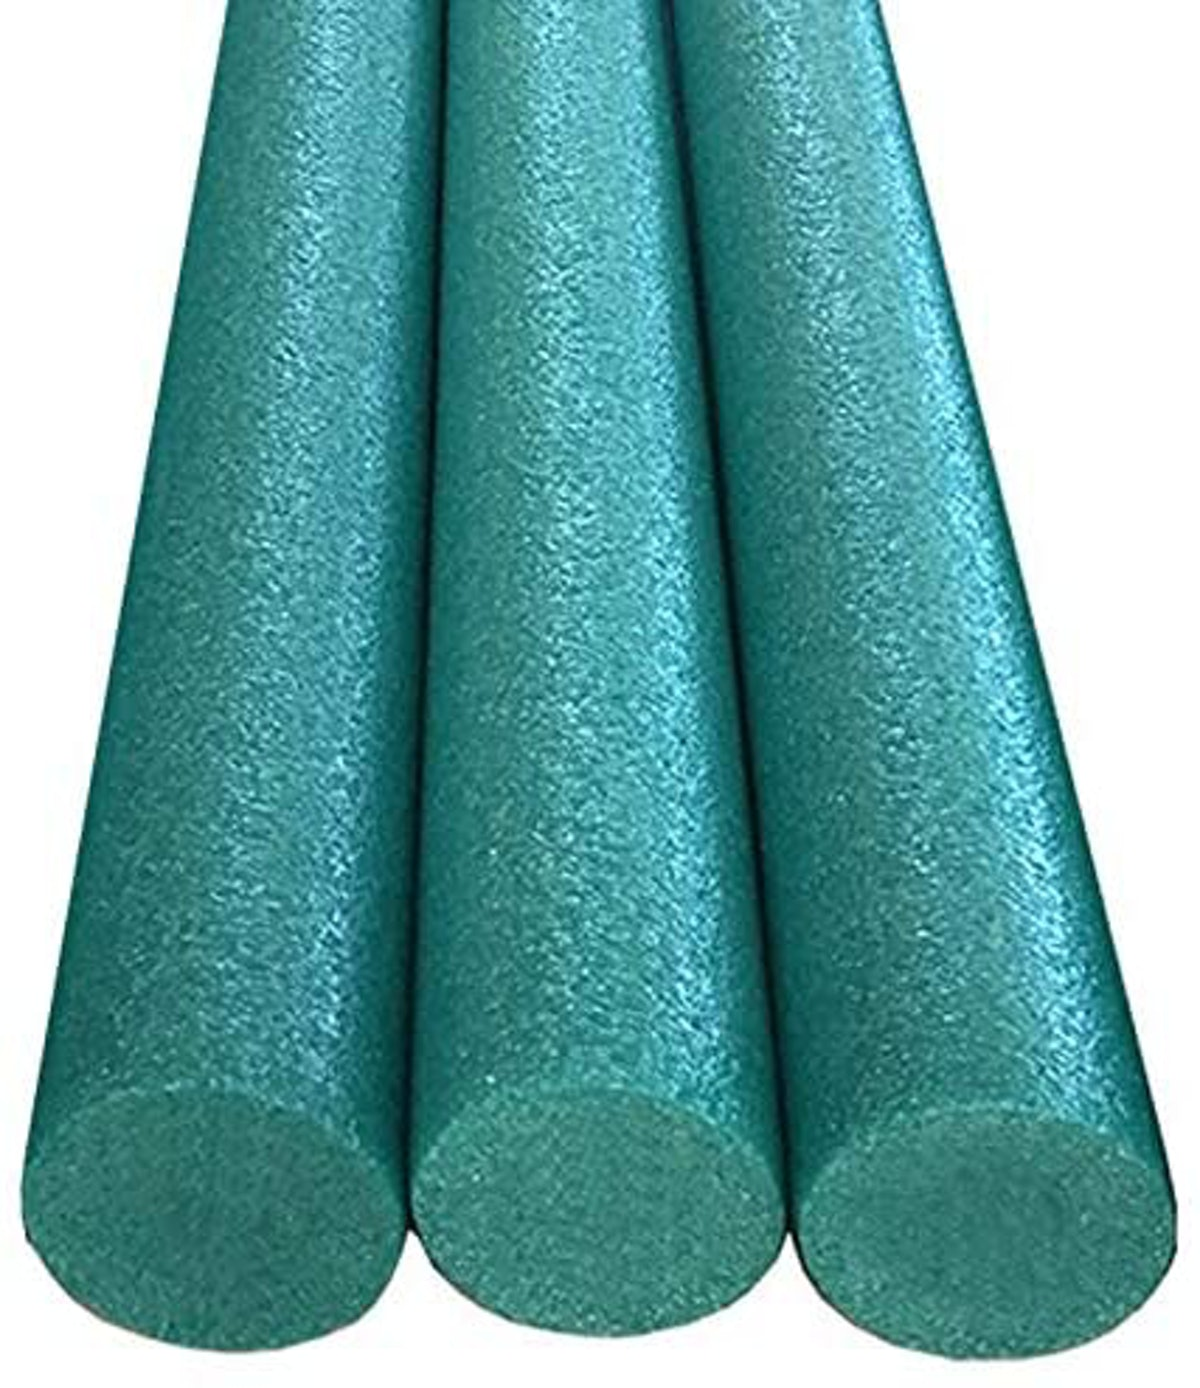 Oodles of Noodles Solid-Core Deluxe Foam Pool Noodles (3-Pack)